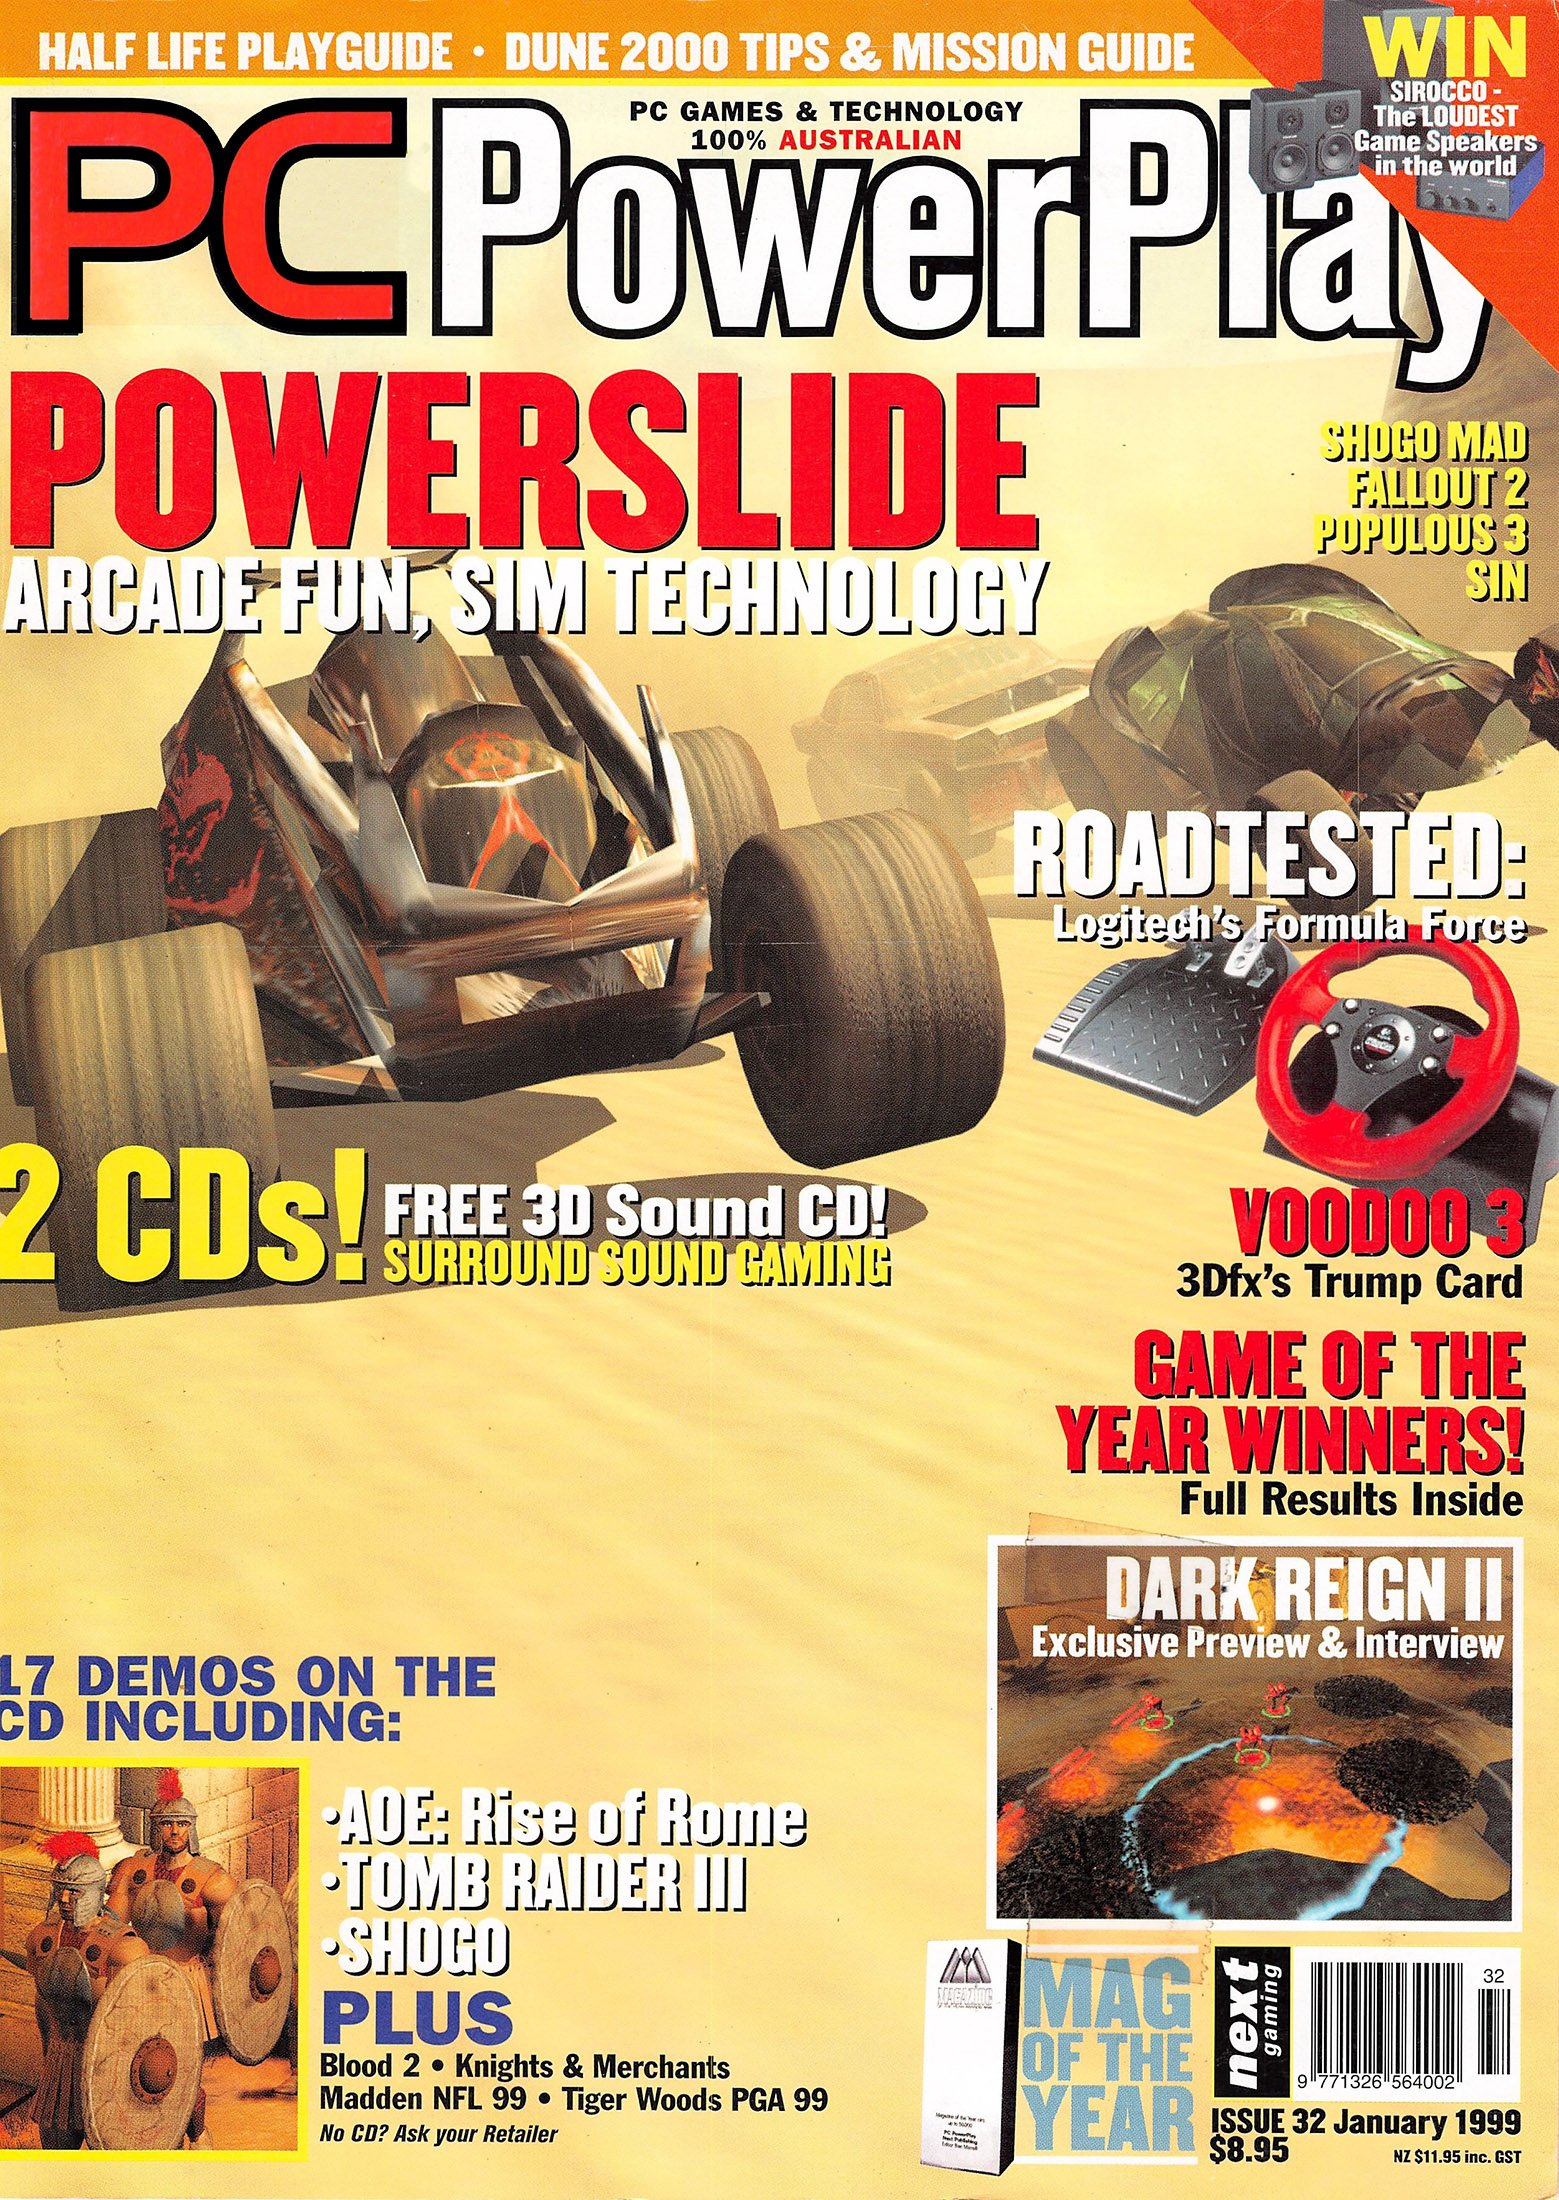 PC PowerPlay 032 (January 1999)